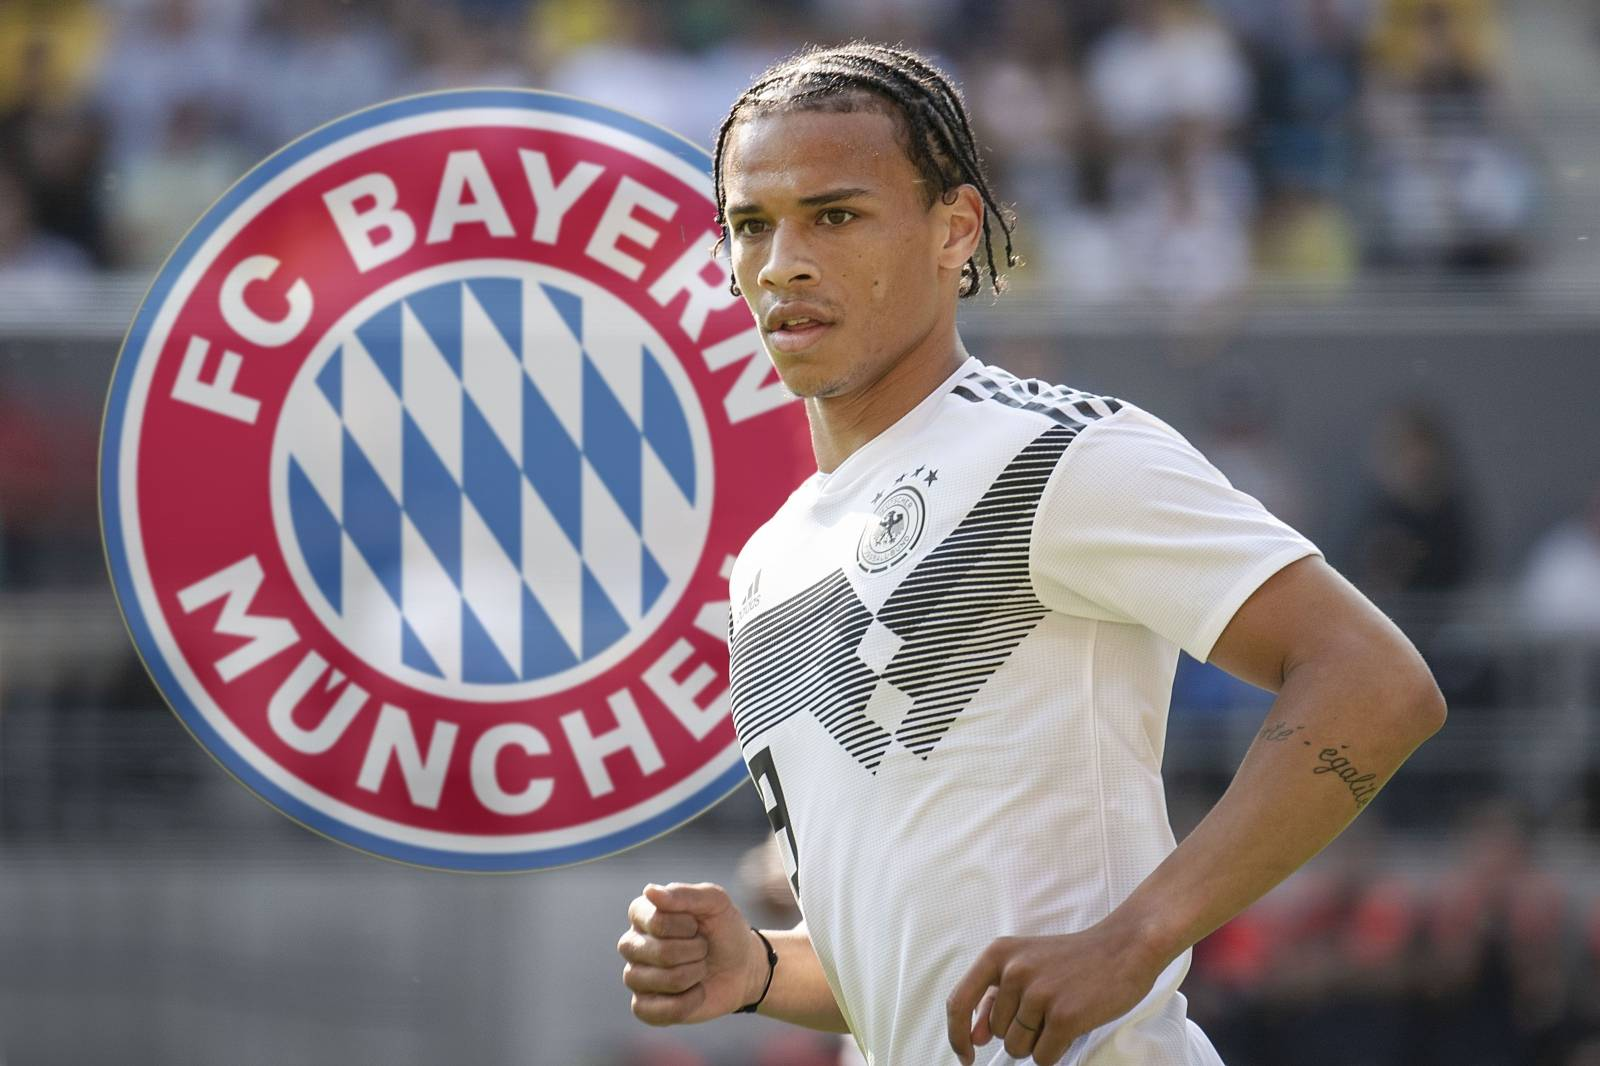 Change Leroy SANE to FC Bayern Munich.